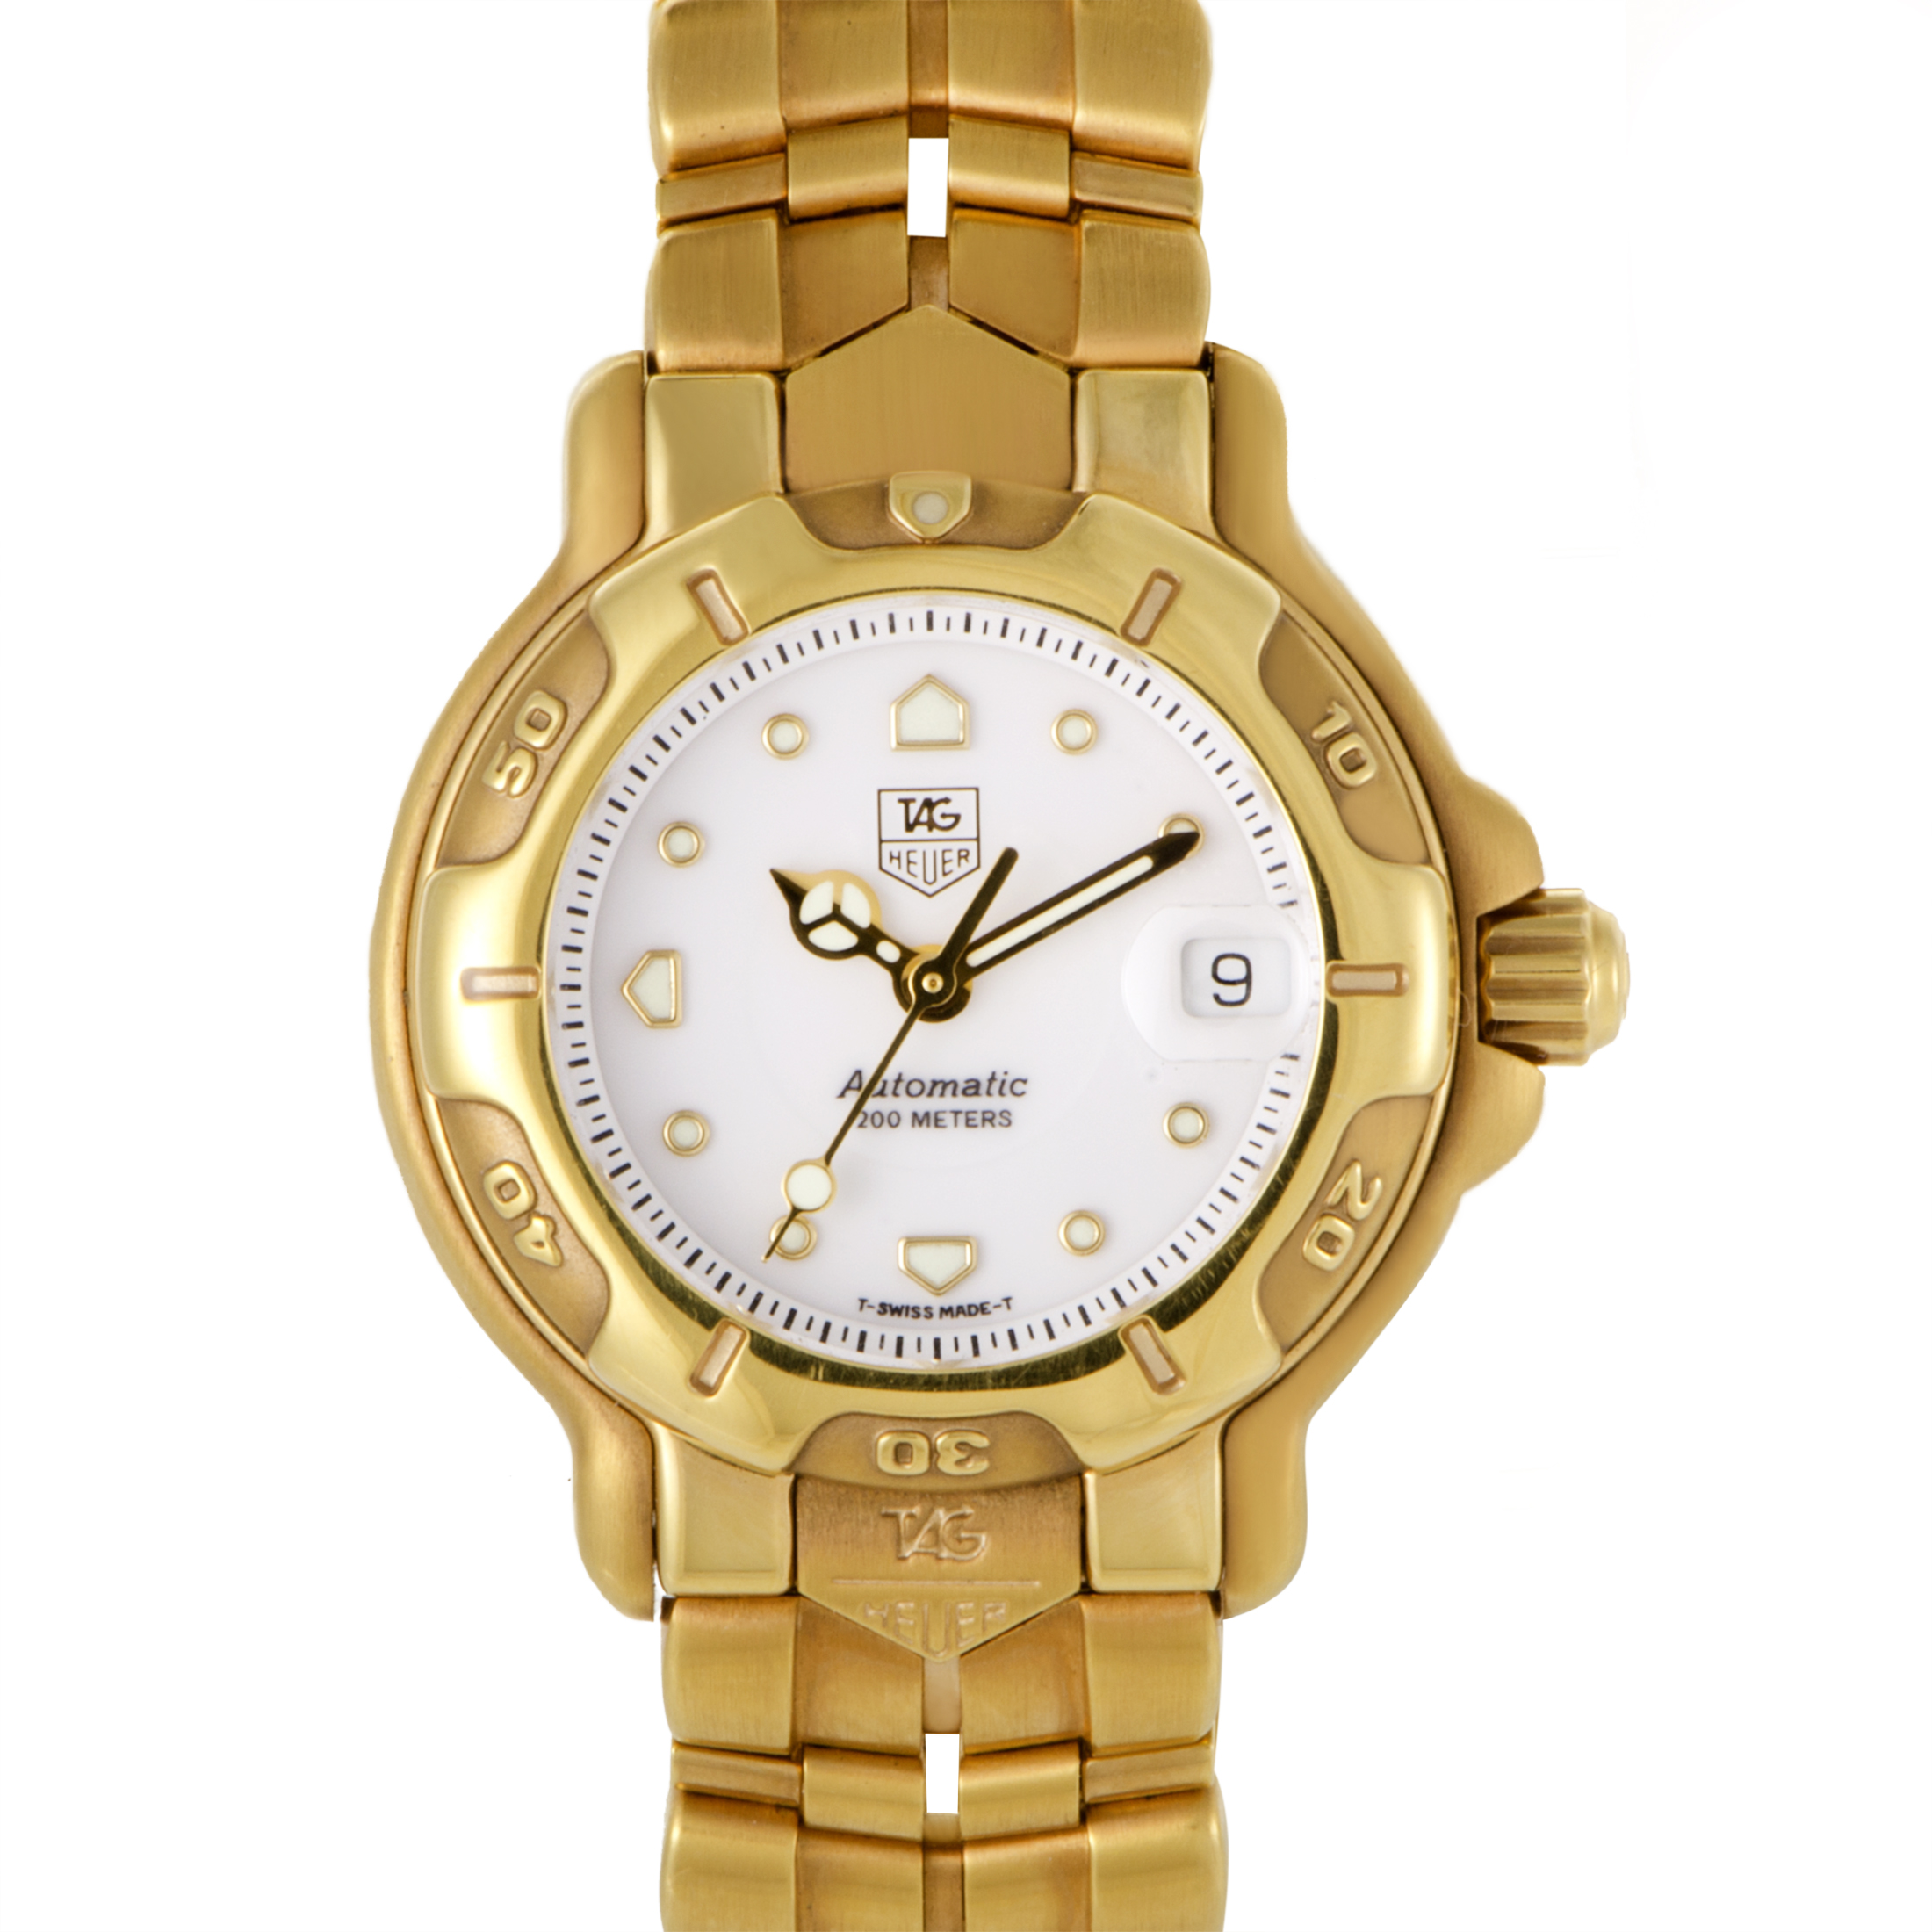 Tag Heuer Womens 18K Yellow Gold Quartz Watch DIA003220 WH23